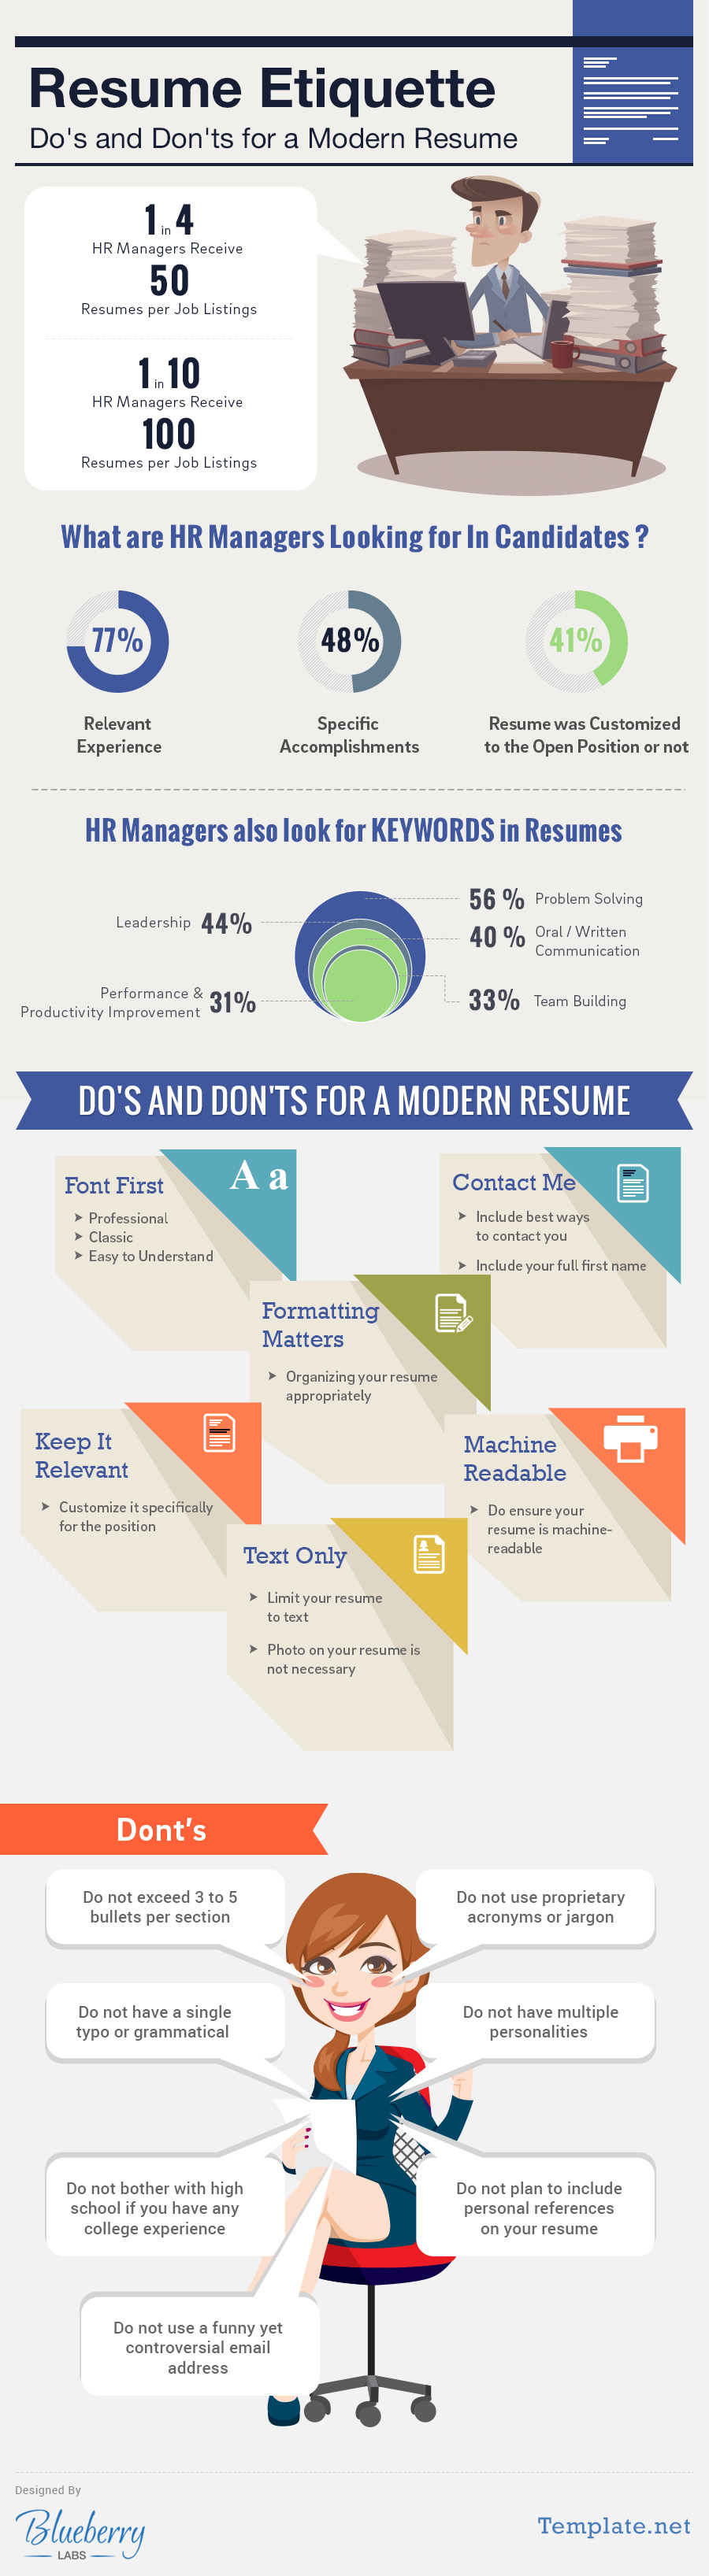 resume skills social media resume samples resume examples resume skills social media 10 essential skills a social media manager needs on their resume etiquitte